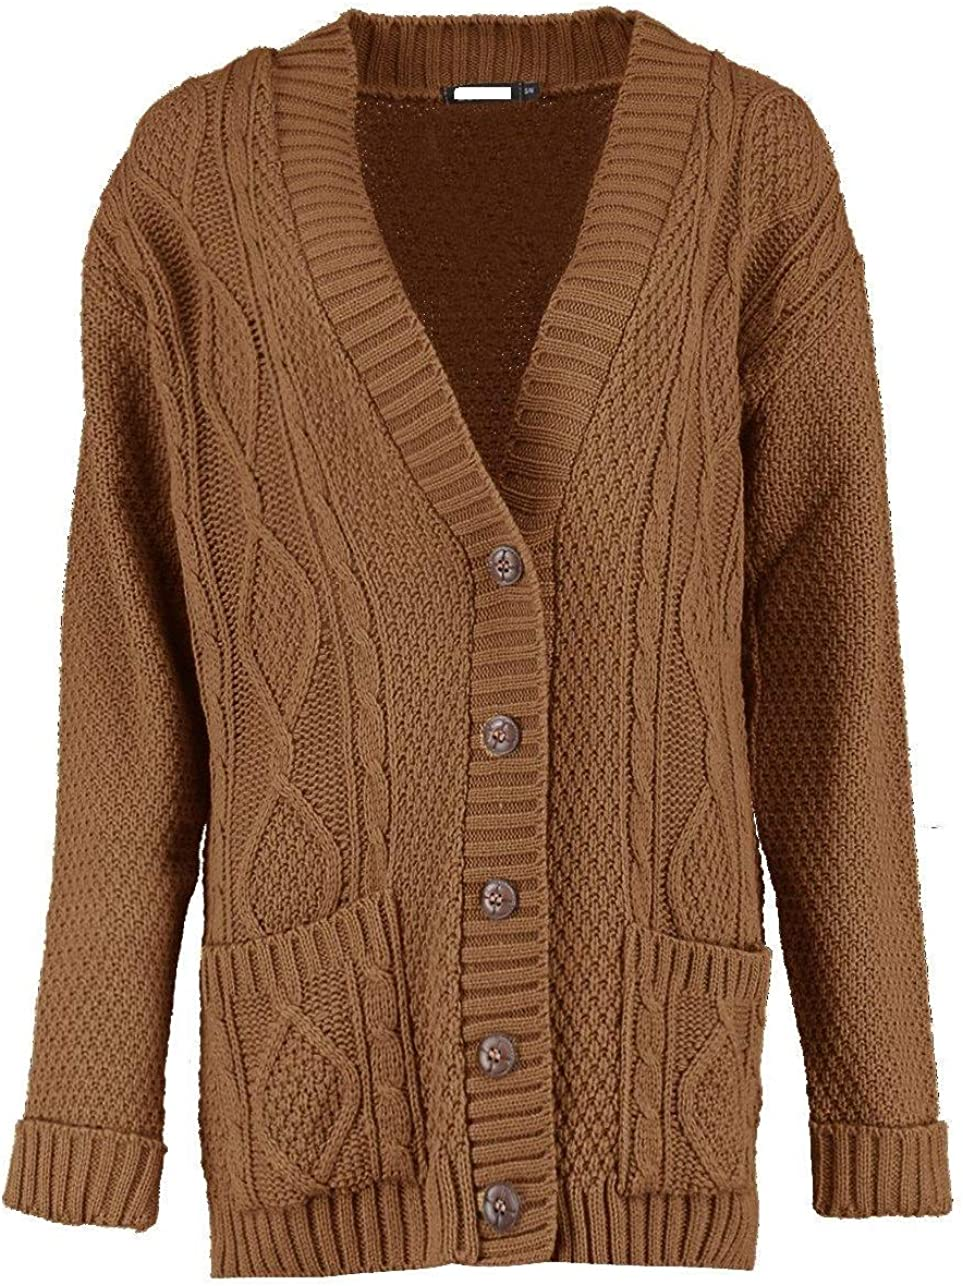 Women/'s Ladies Cable Knitted 5 Button Granded Boyfriend Cardigan Plus Size 8-26